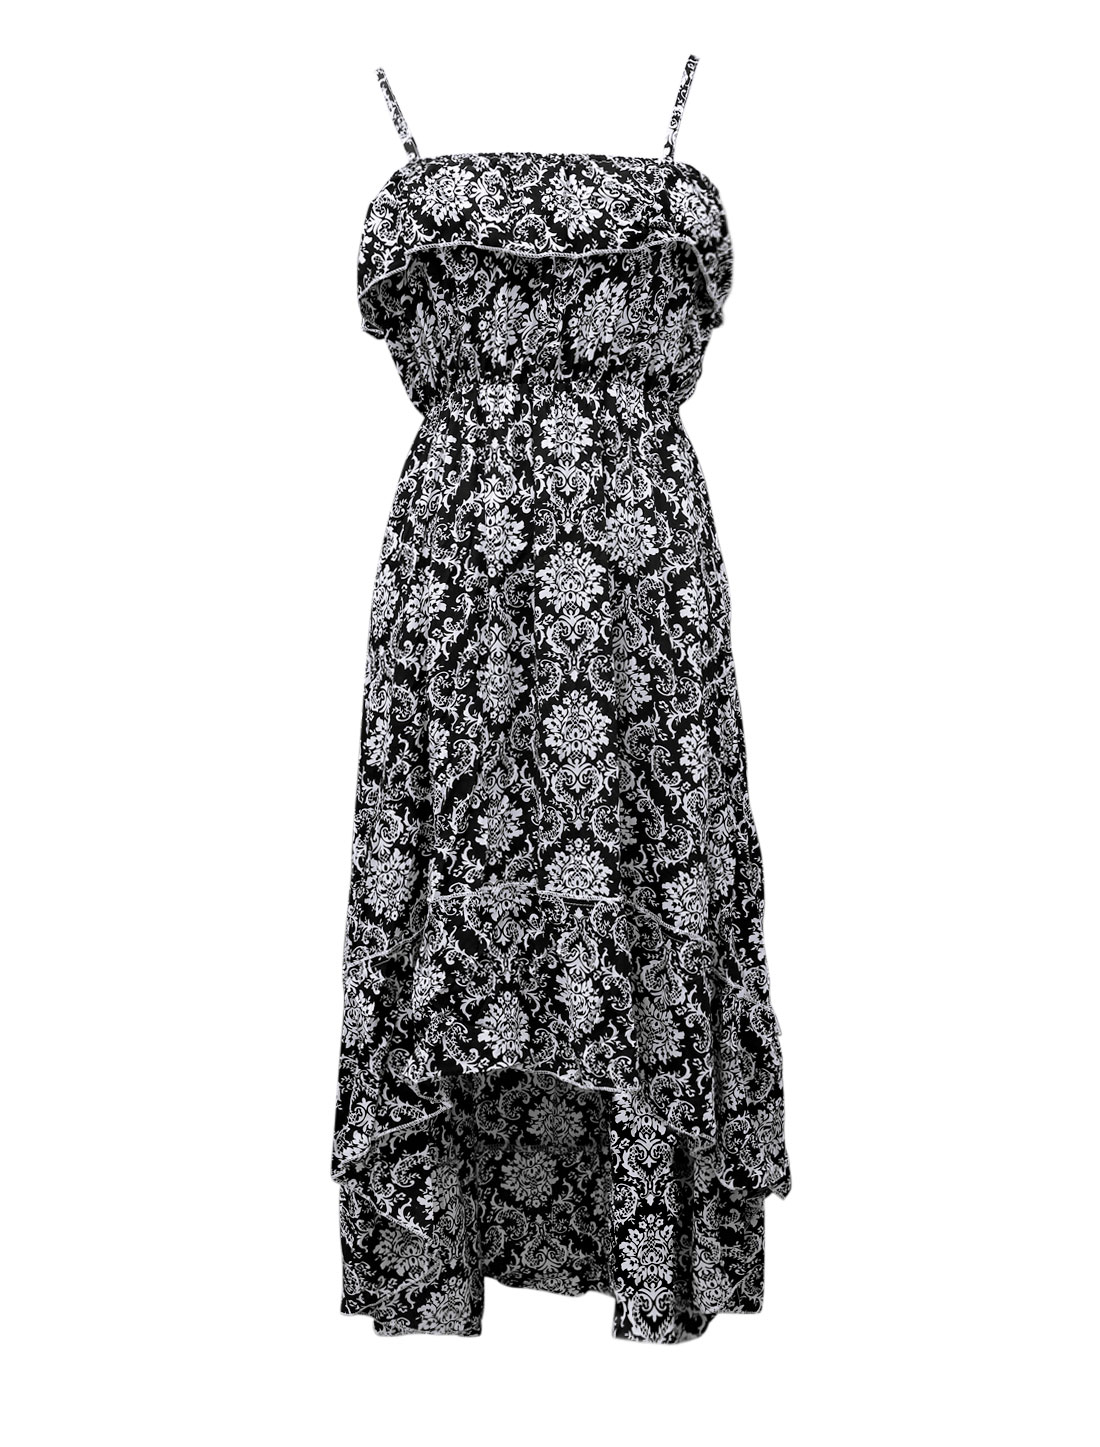 Lady Spaghetti Straps Jacquard Pattern Casual Sundress Black S